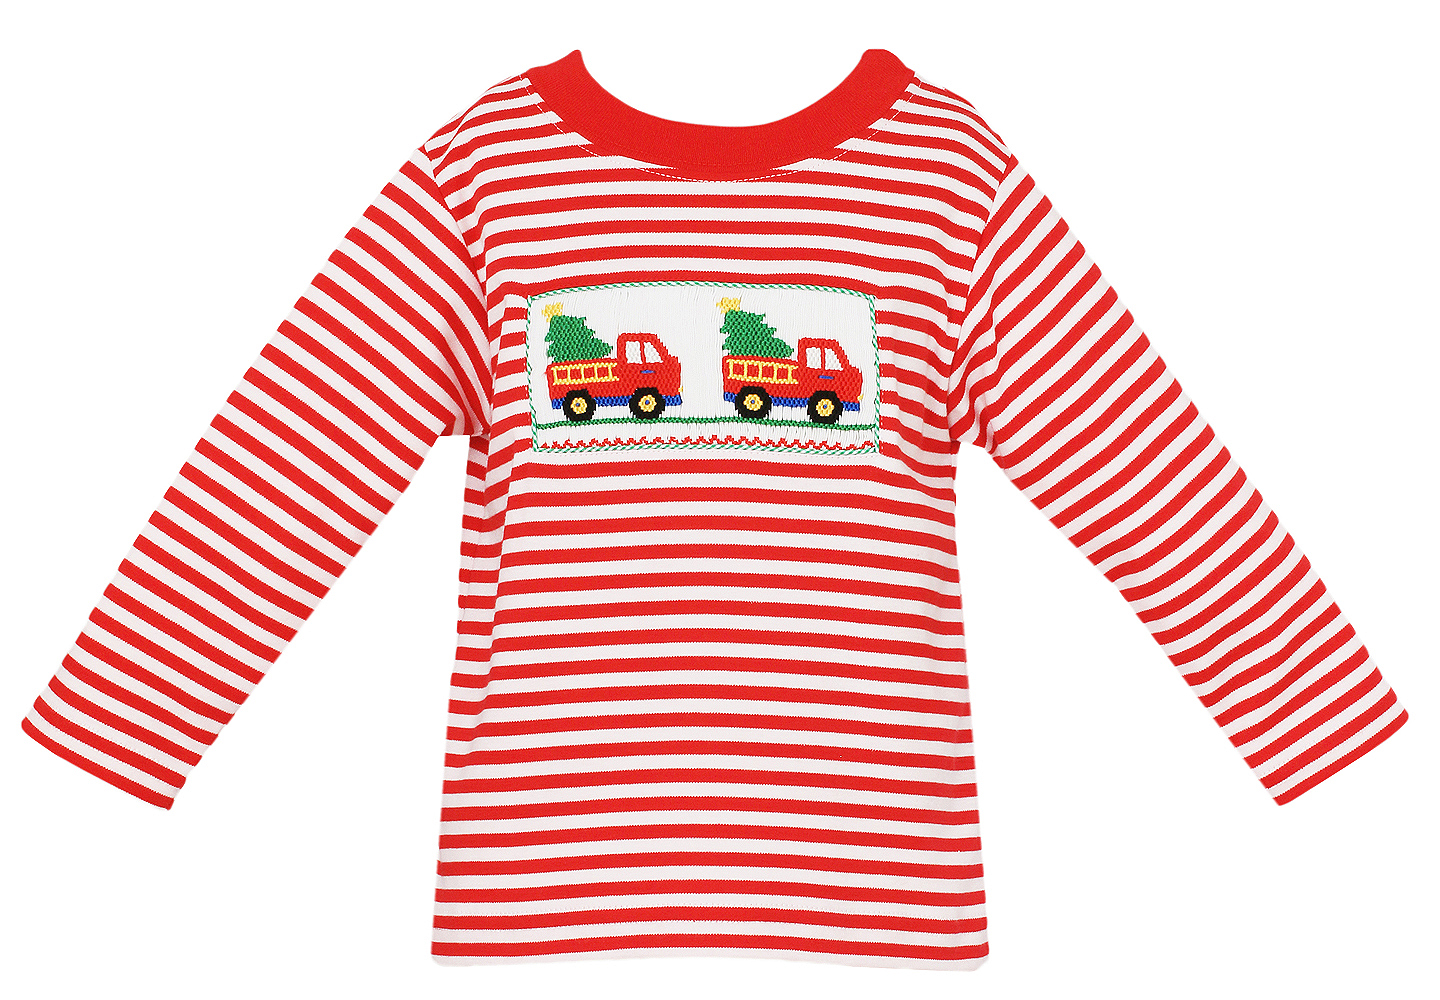 Anavini Baby Toddler Boys Red Striped Knit Smocked Christmas Tree